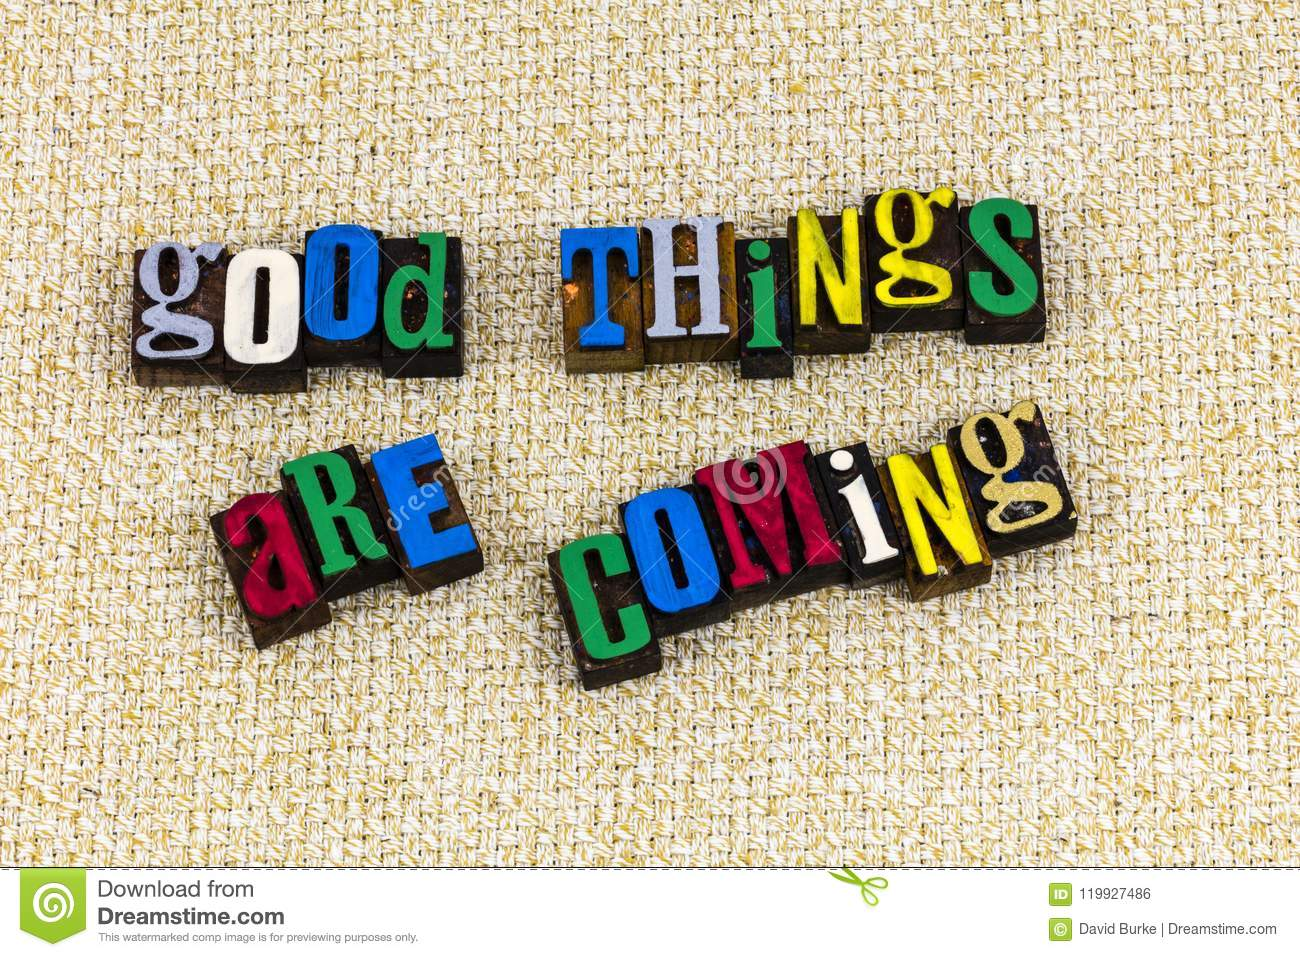 Good things are coming positive attitude